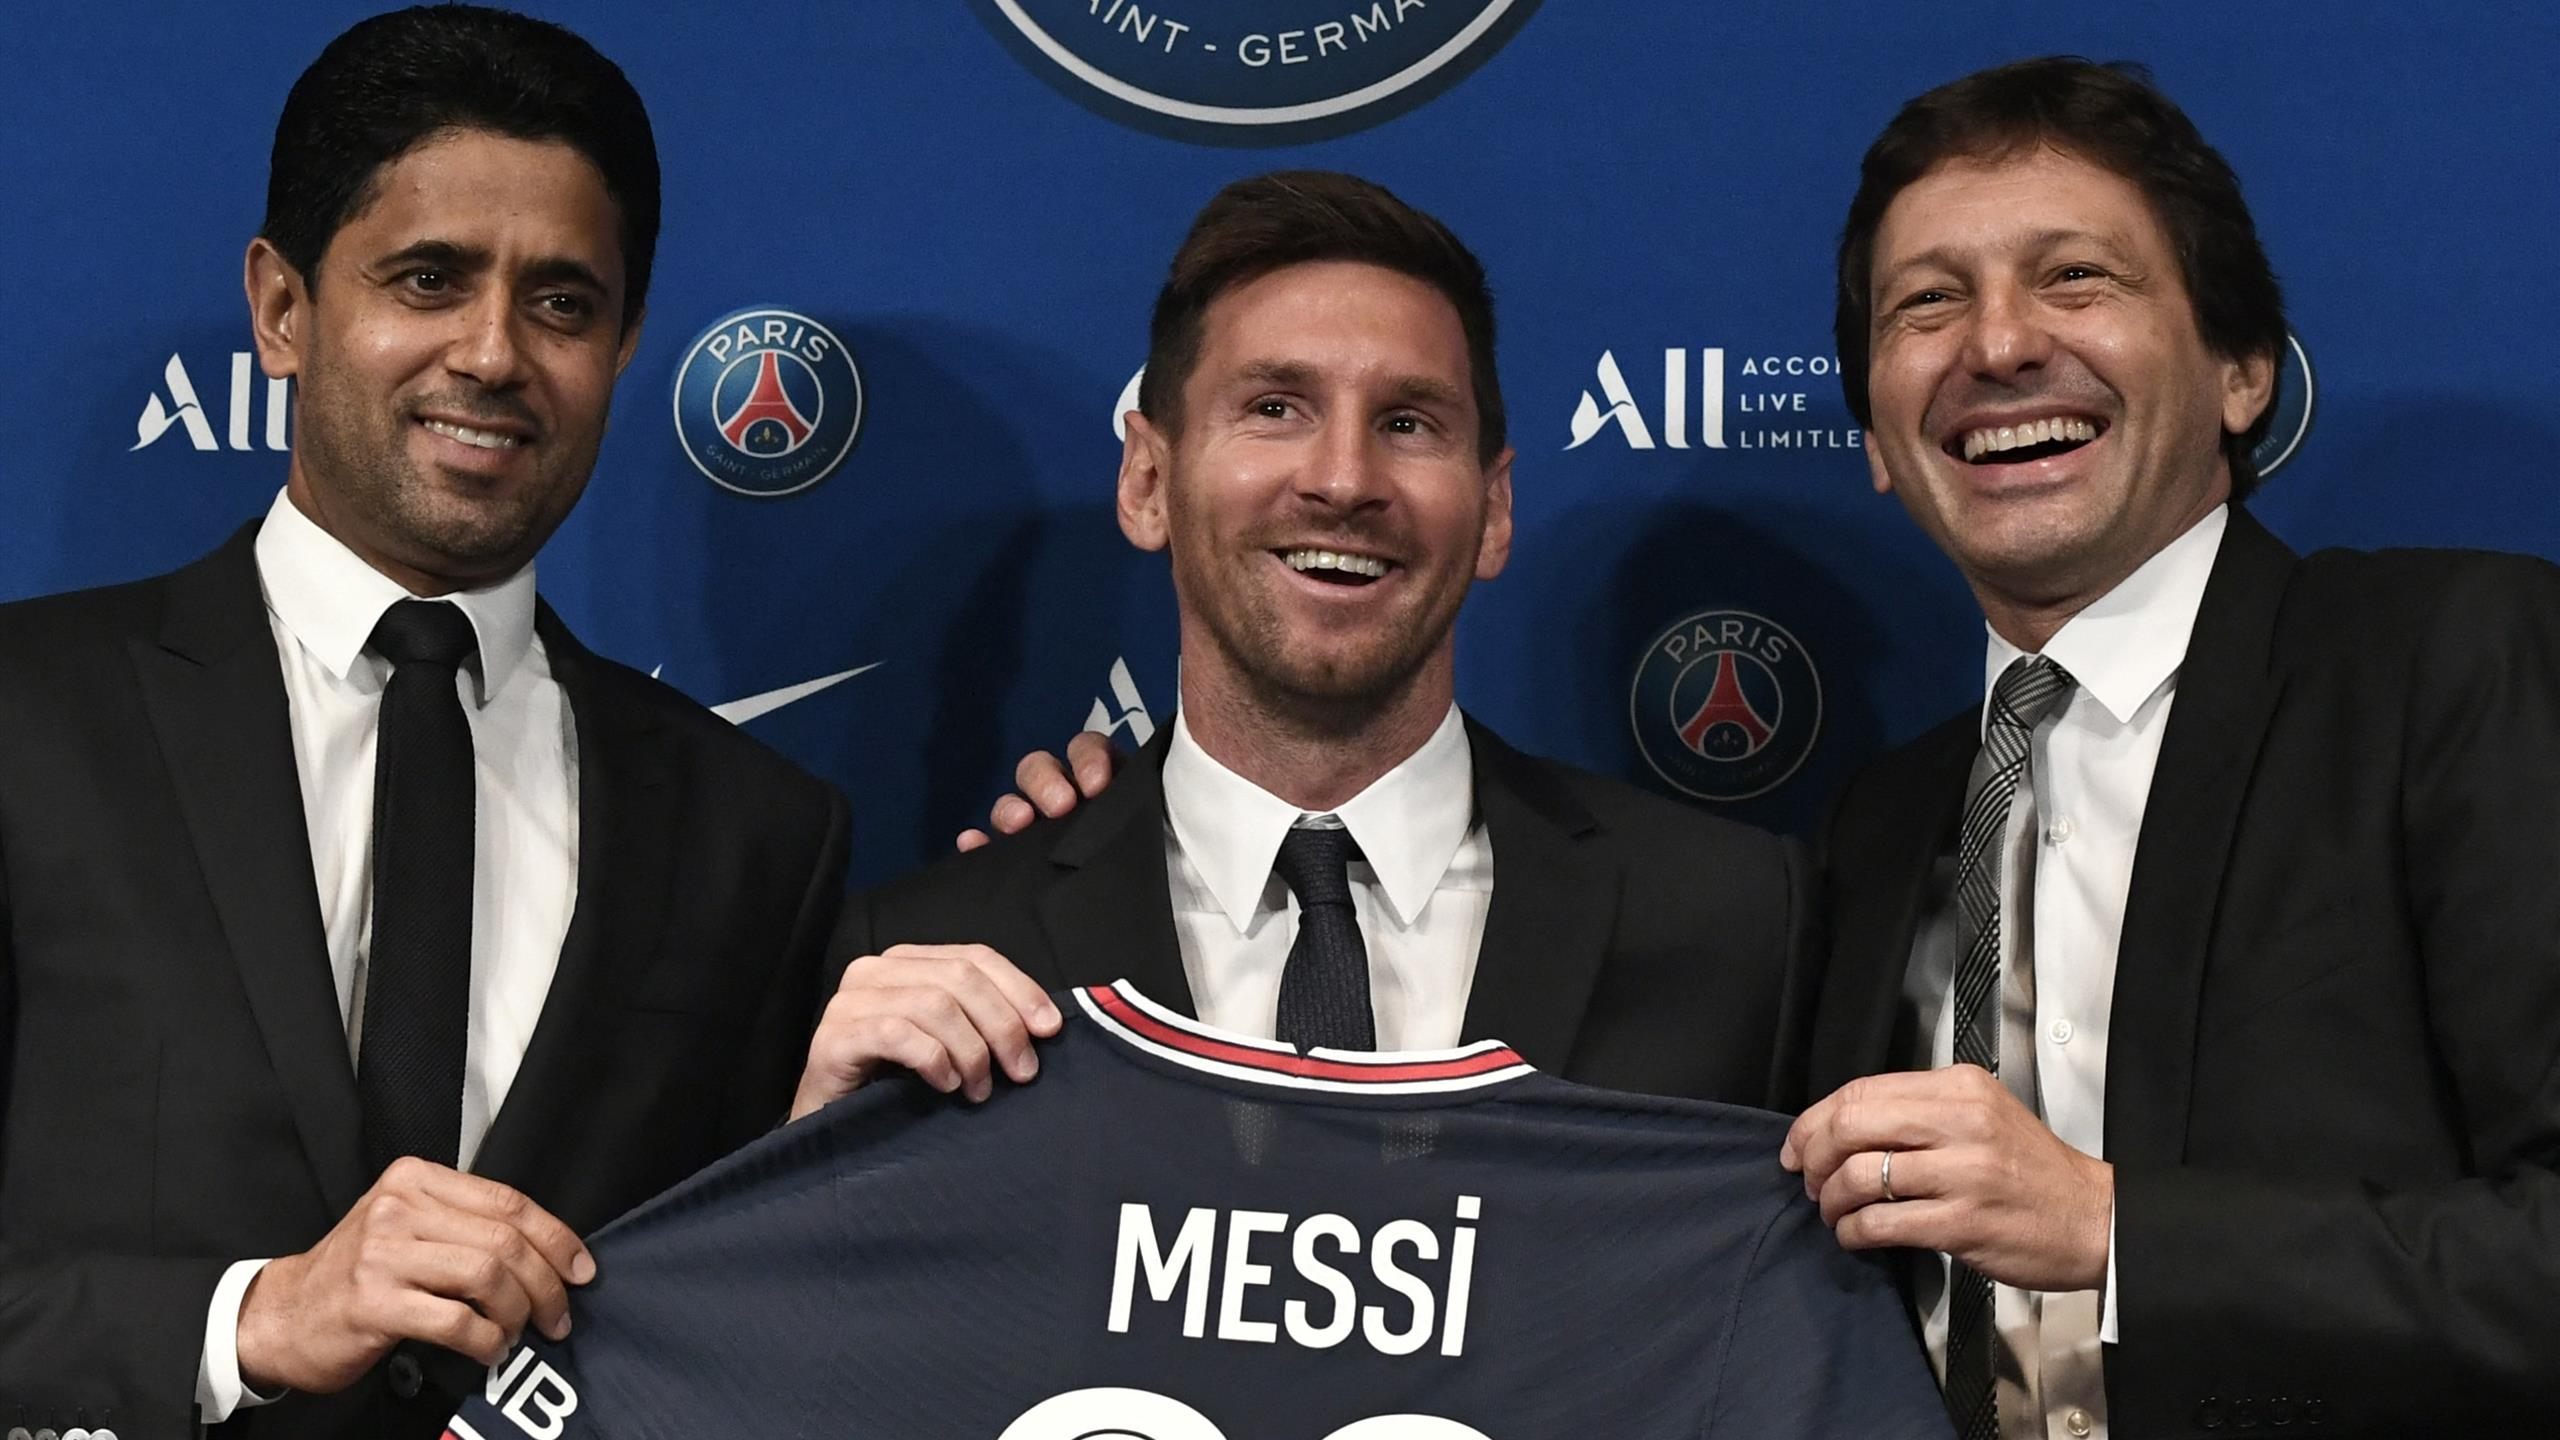 Lionel Messi wants to win the Champions League again as he is unveiled as a Paris  Saint-Germain player - Eurosport